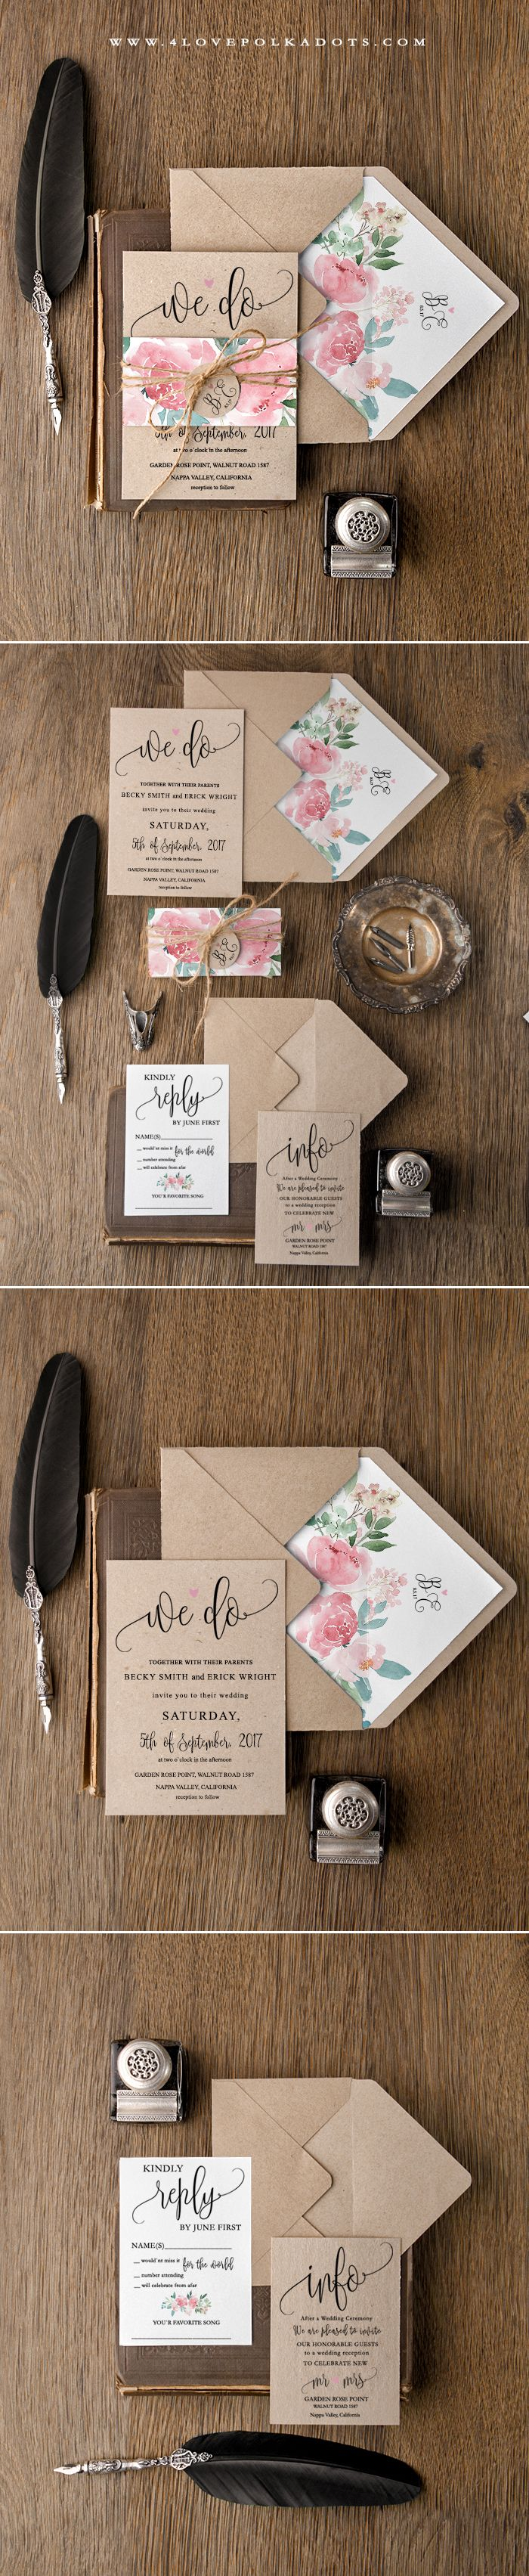 diamond wedding invitations%0A Romantic Floral Wedding Invitation  fully custmized  weddinginvitations